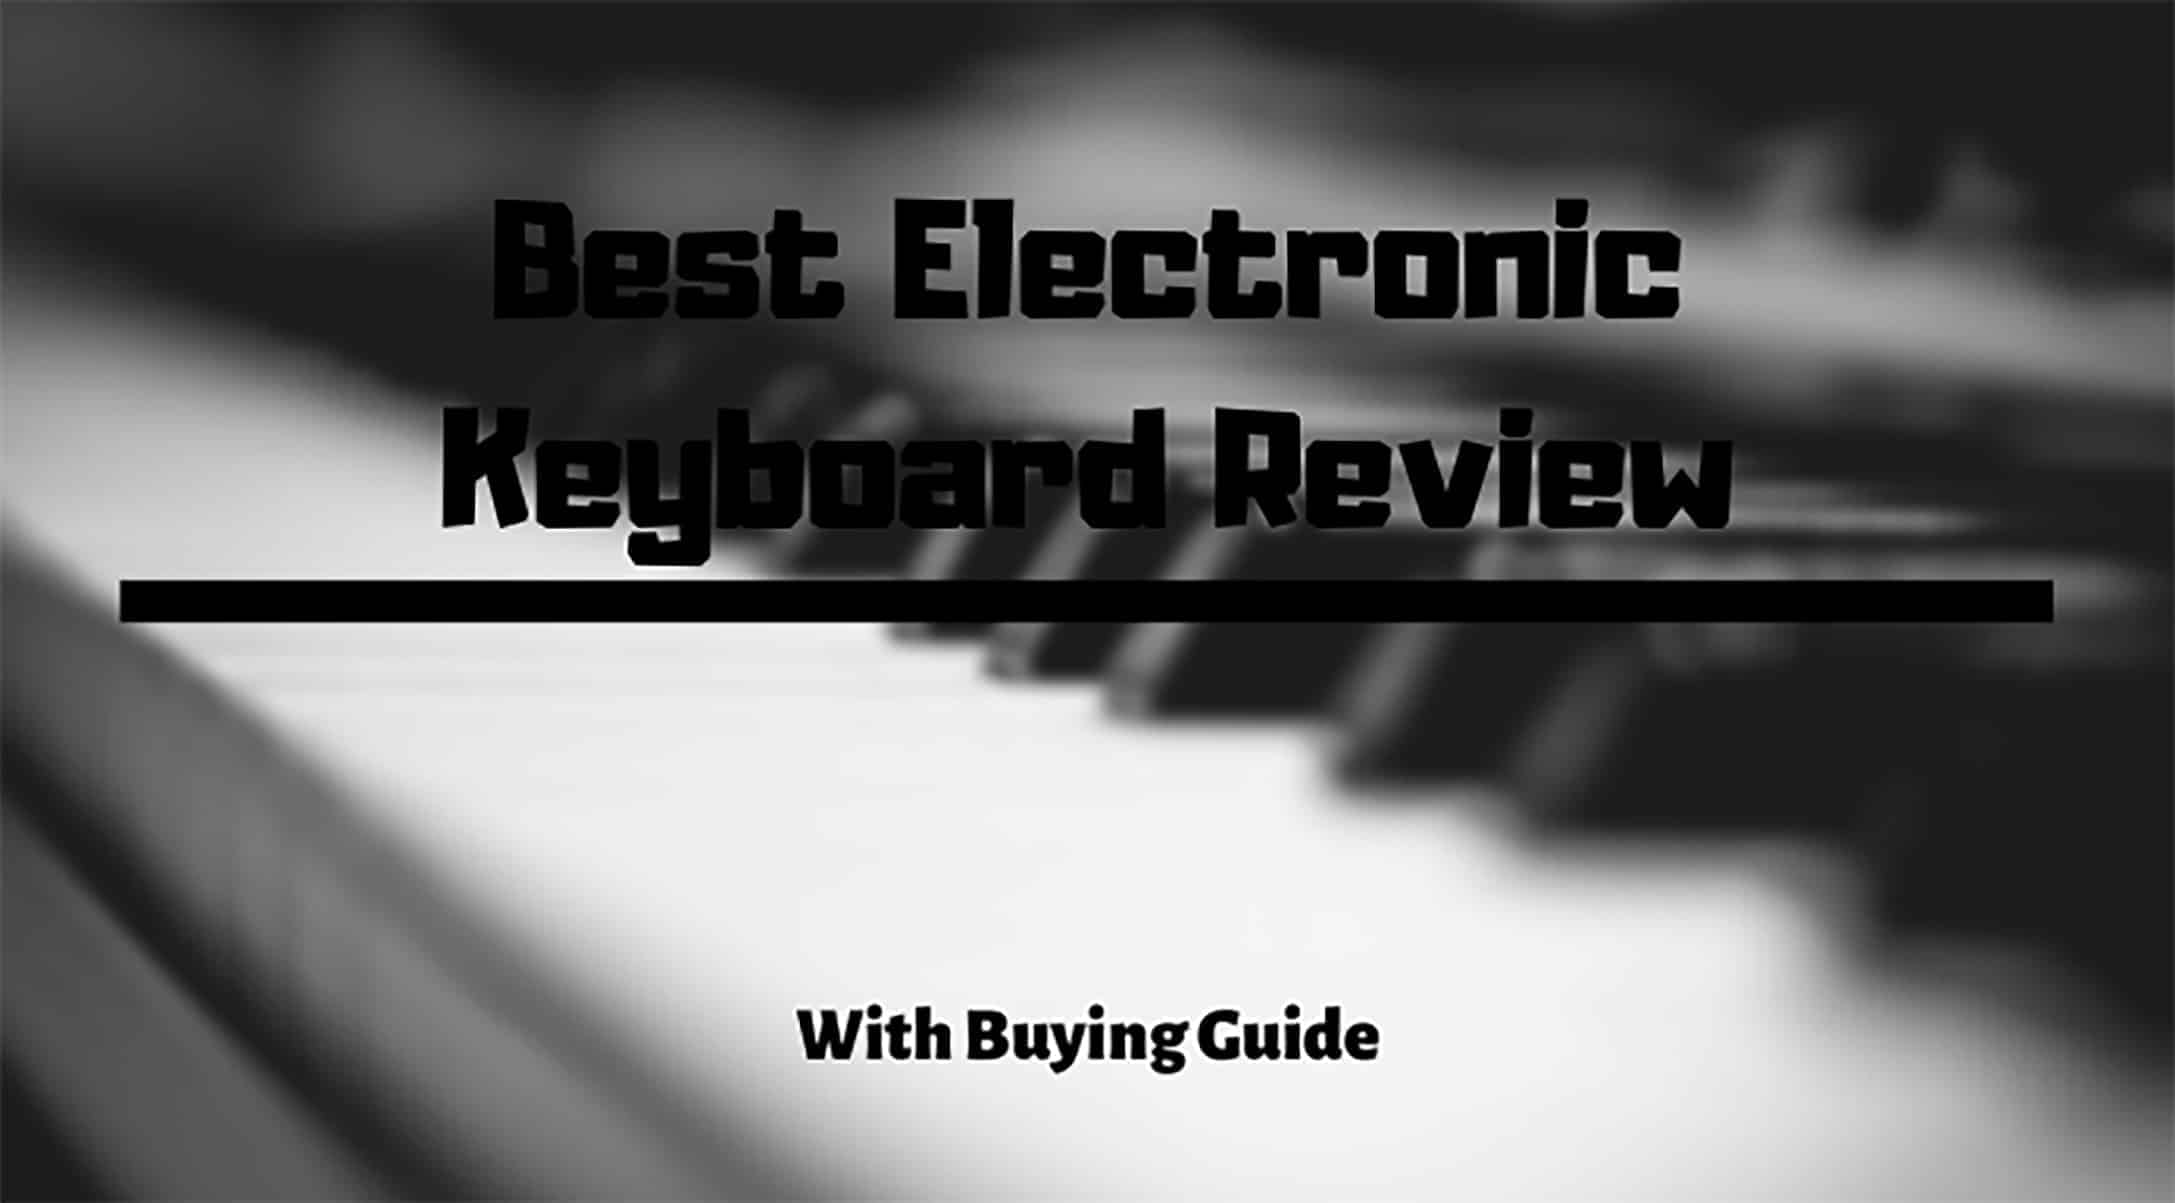 best electronic keyboard review